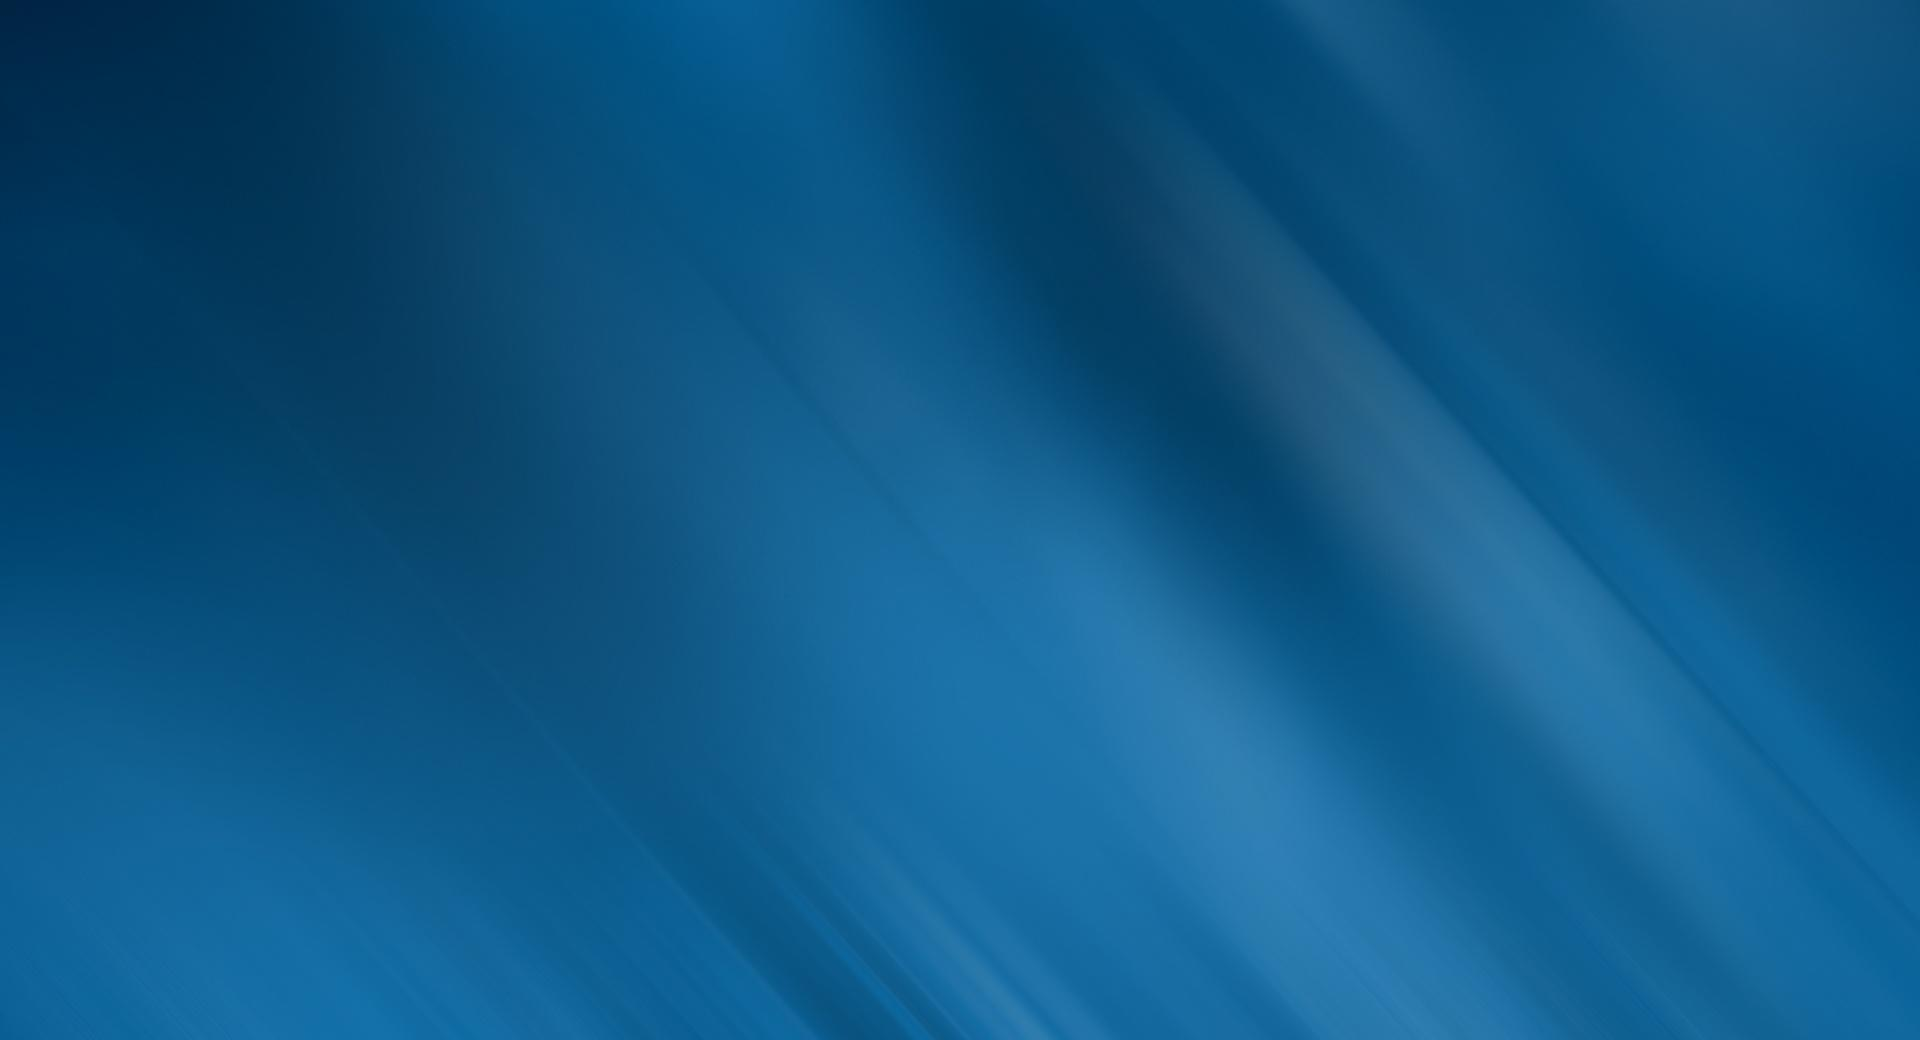 Blurry Blue Background wallpapers HD quality